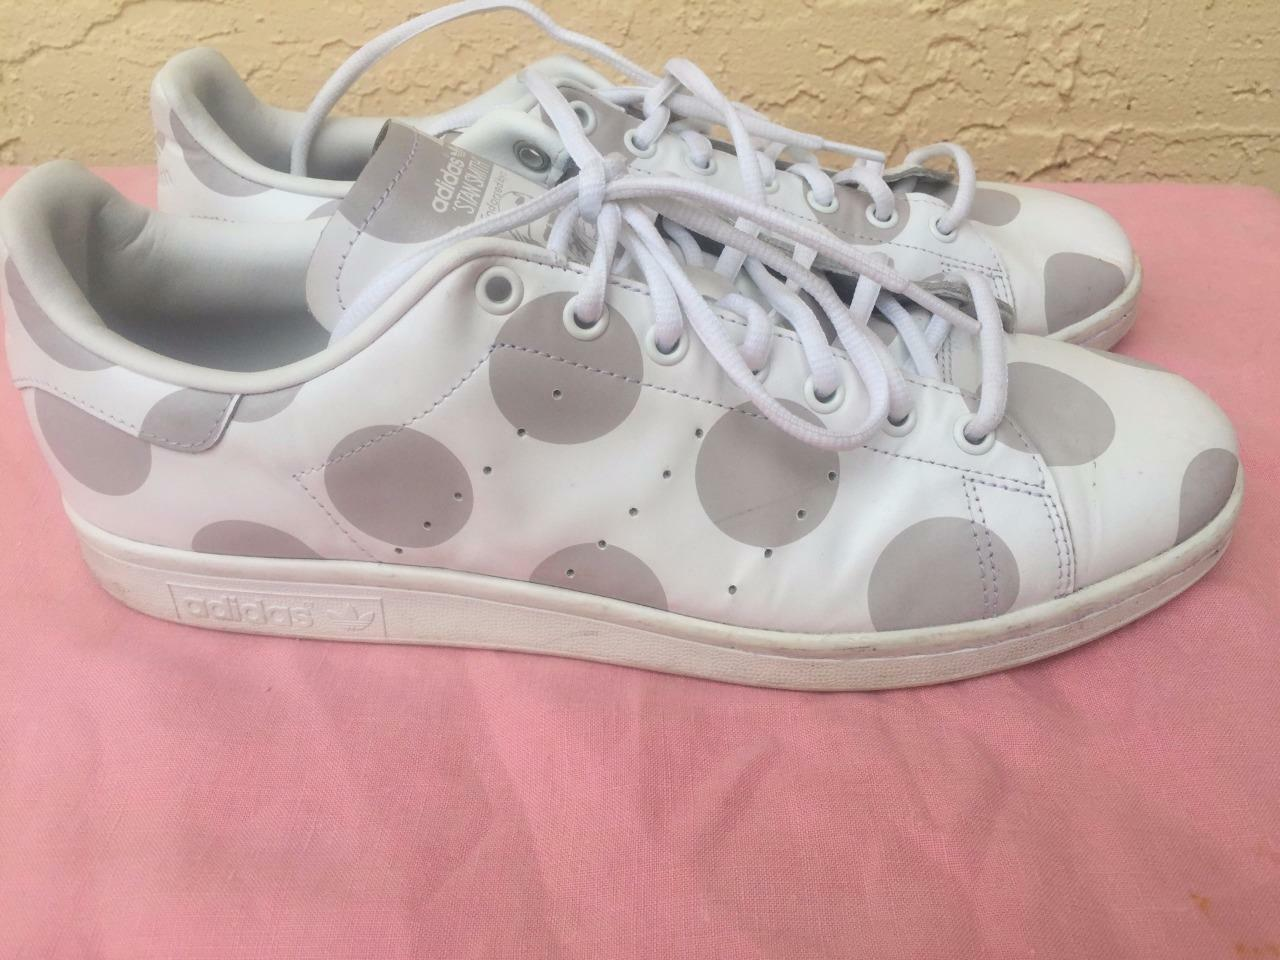 Adidas Originals Stan Blanco Smith s77368 Polka Dot Blanco Stan Leather Sneakers US 12 Especial de tiempo limitado ba522c